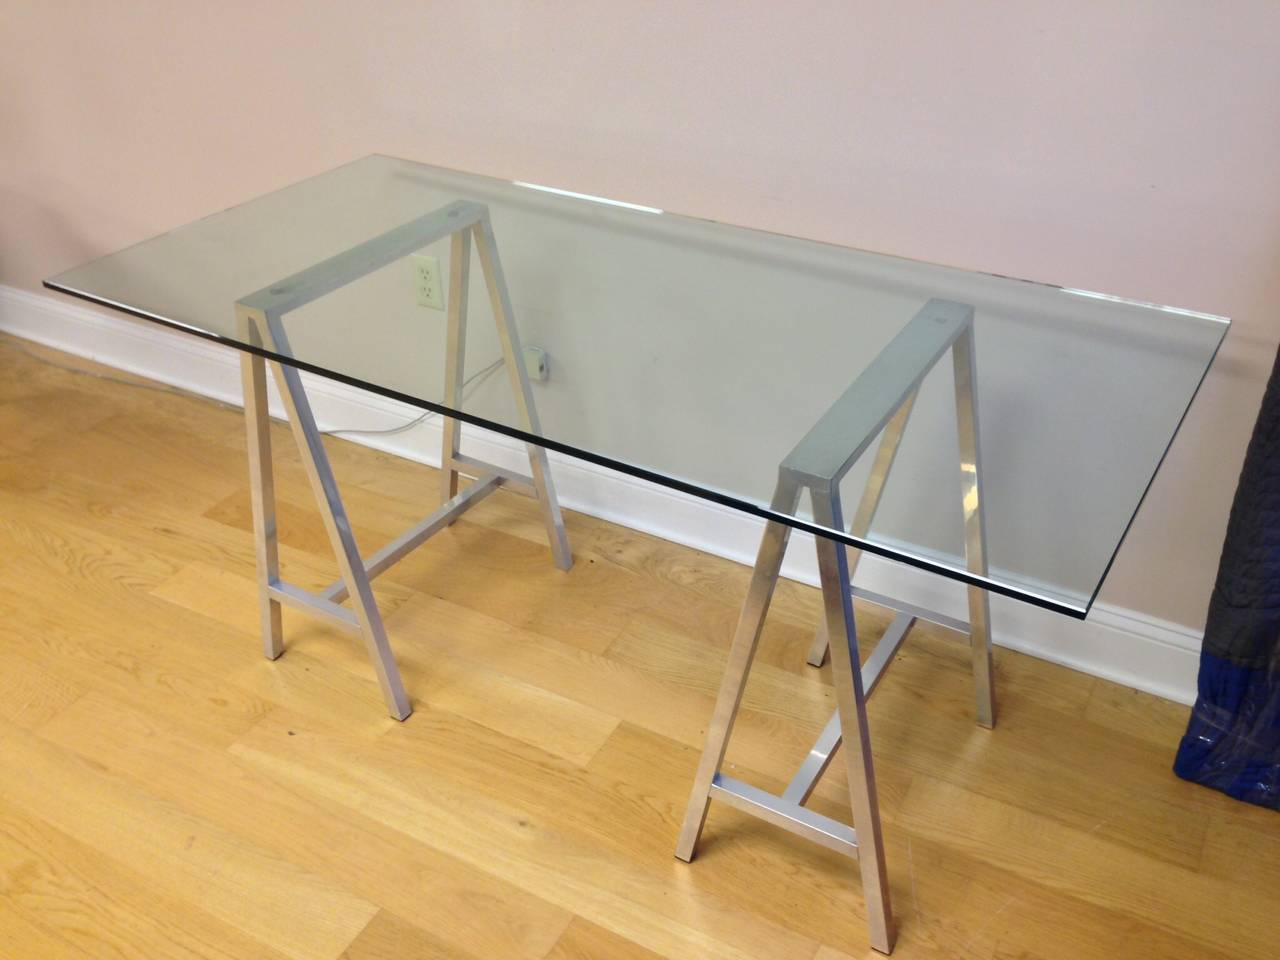 glass desk table tops. a nice glass top table or desk with saw horse aluminum legs. they are high tops e